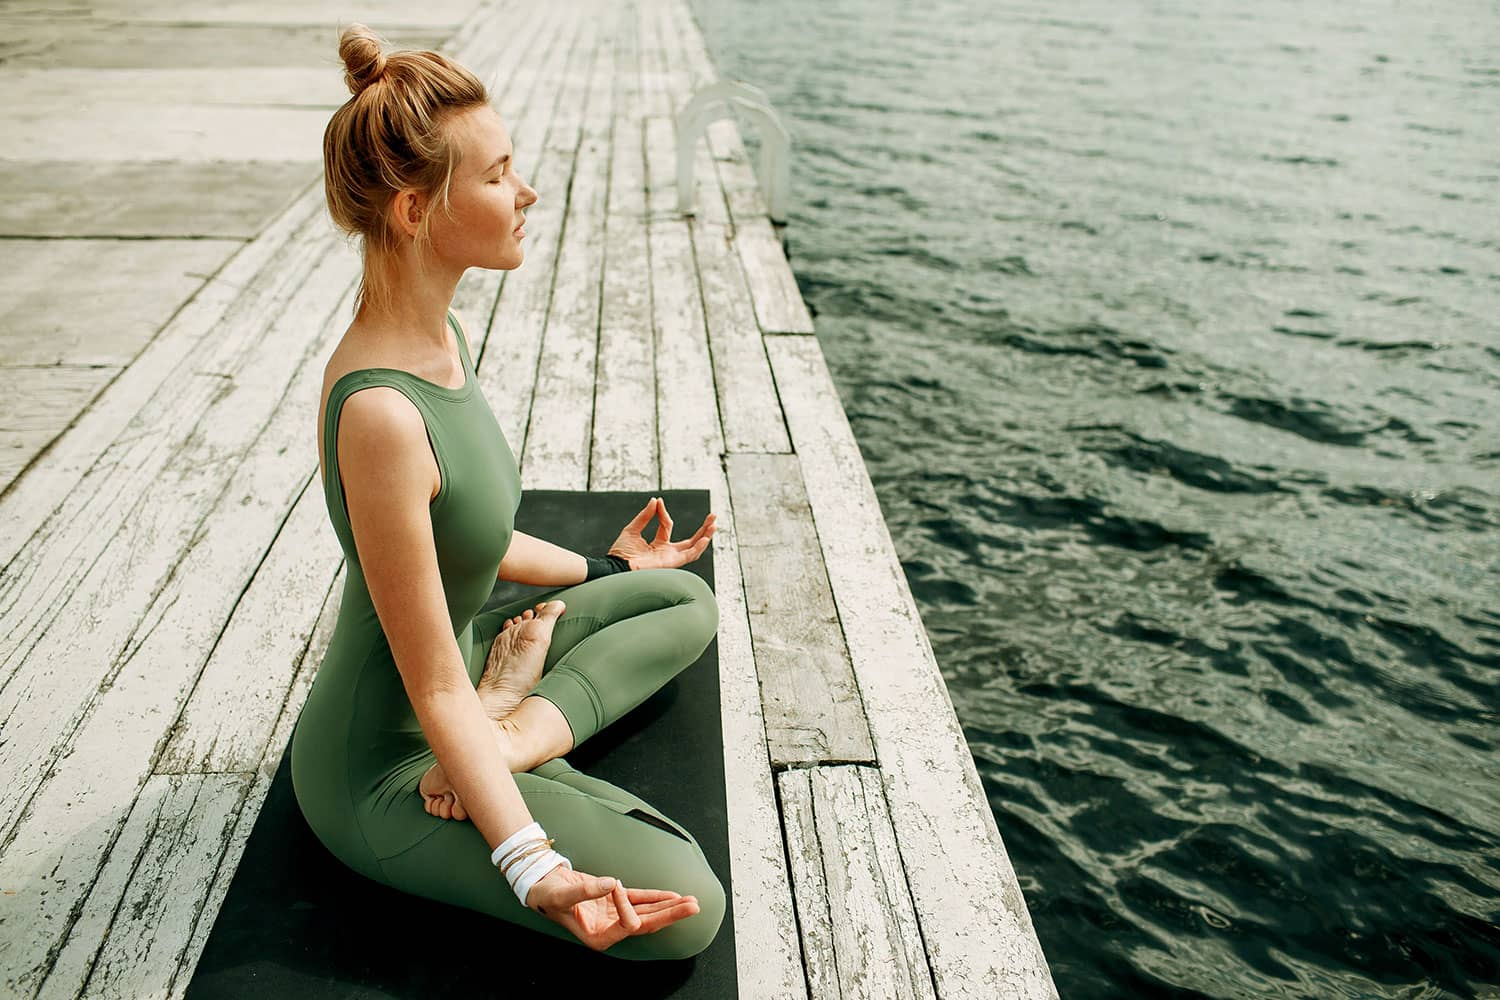 The 5 Best Meditation Poses for Your Practice